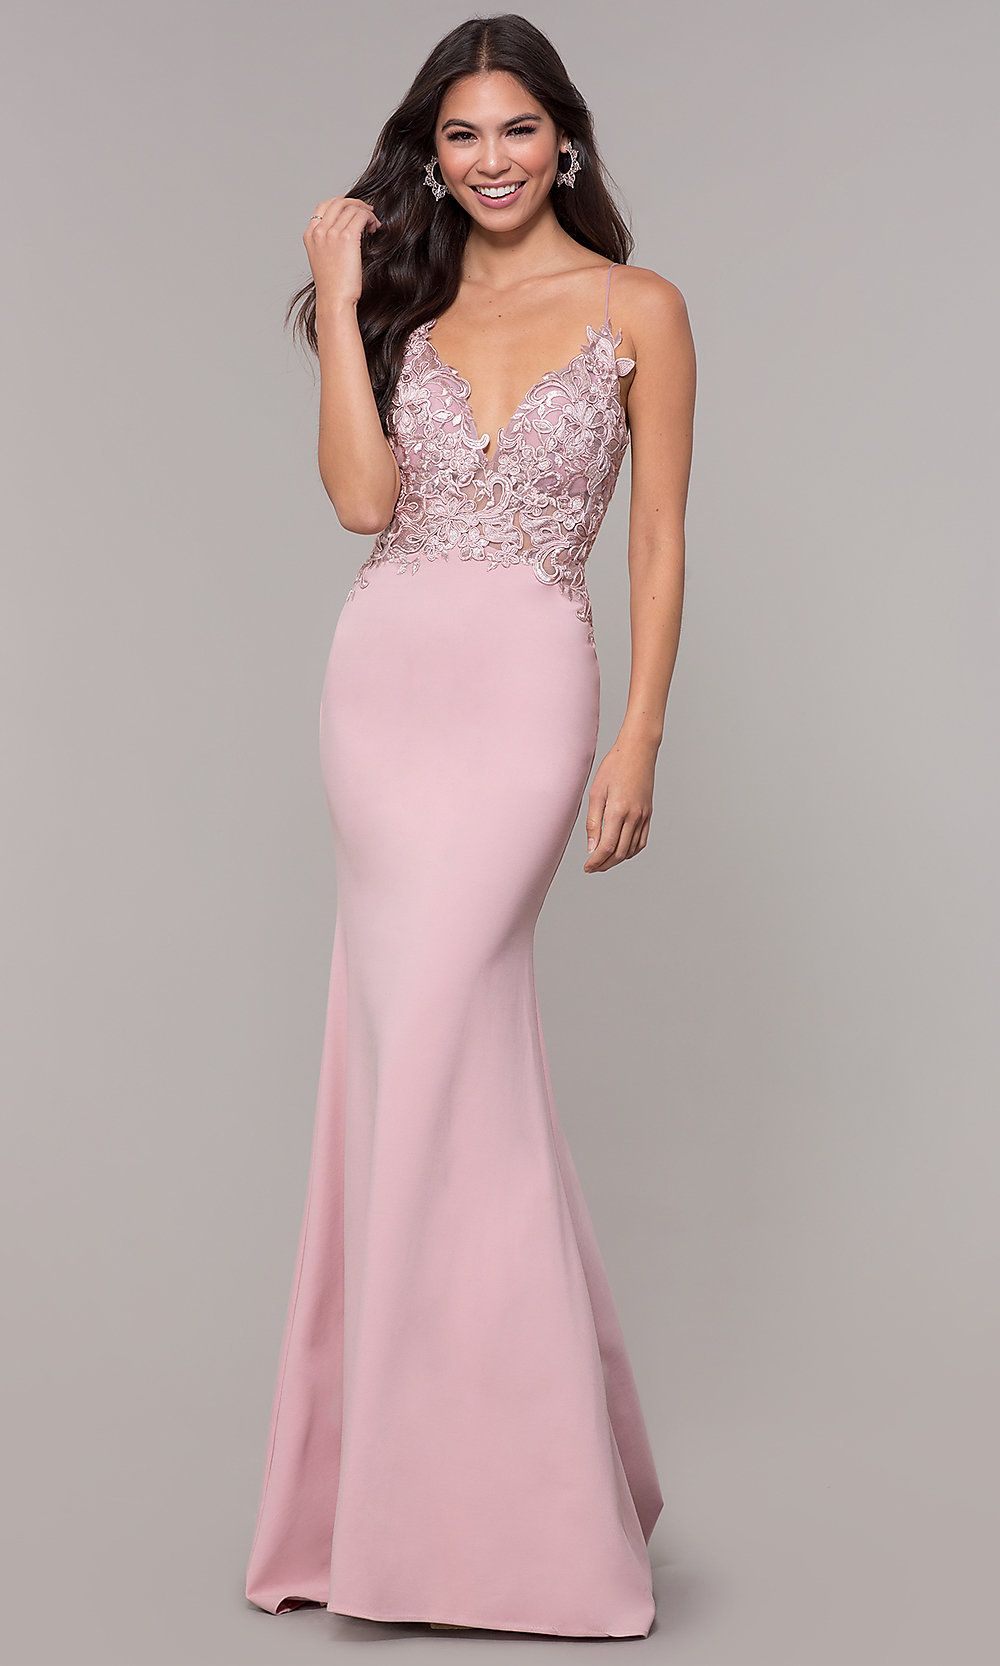 5ef6a46c465 Sleeveless Prom Dress with Embroidered Bodice in 2019